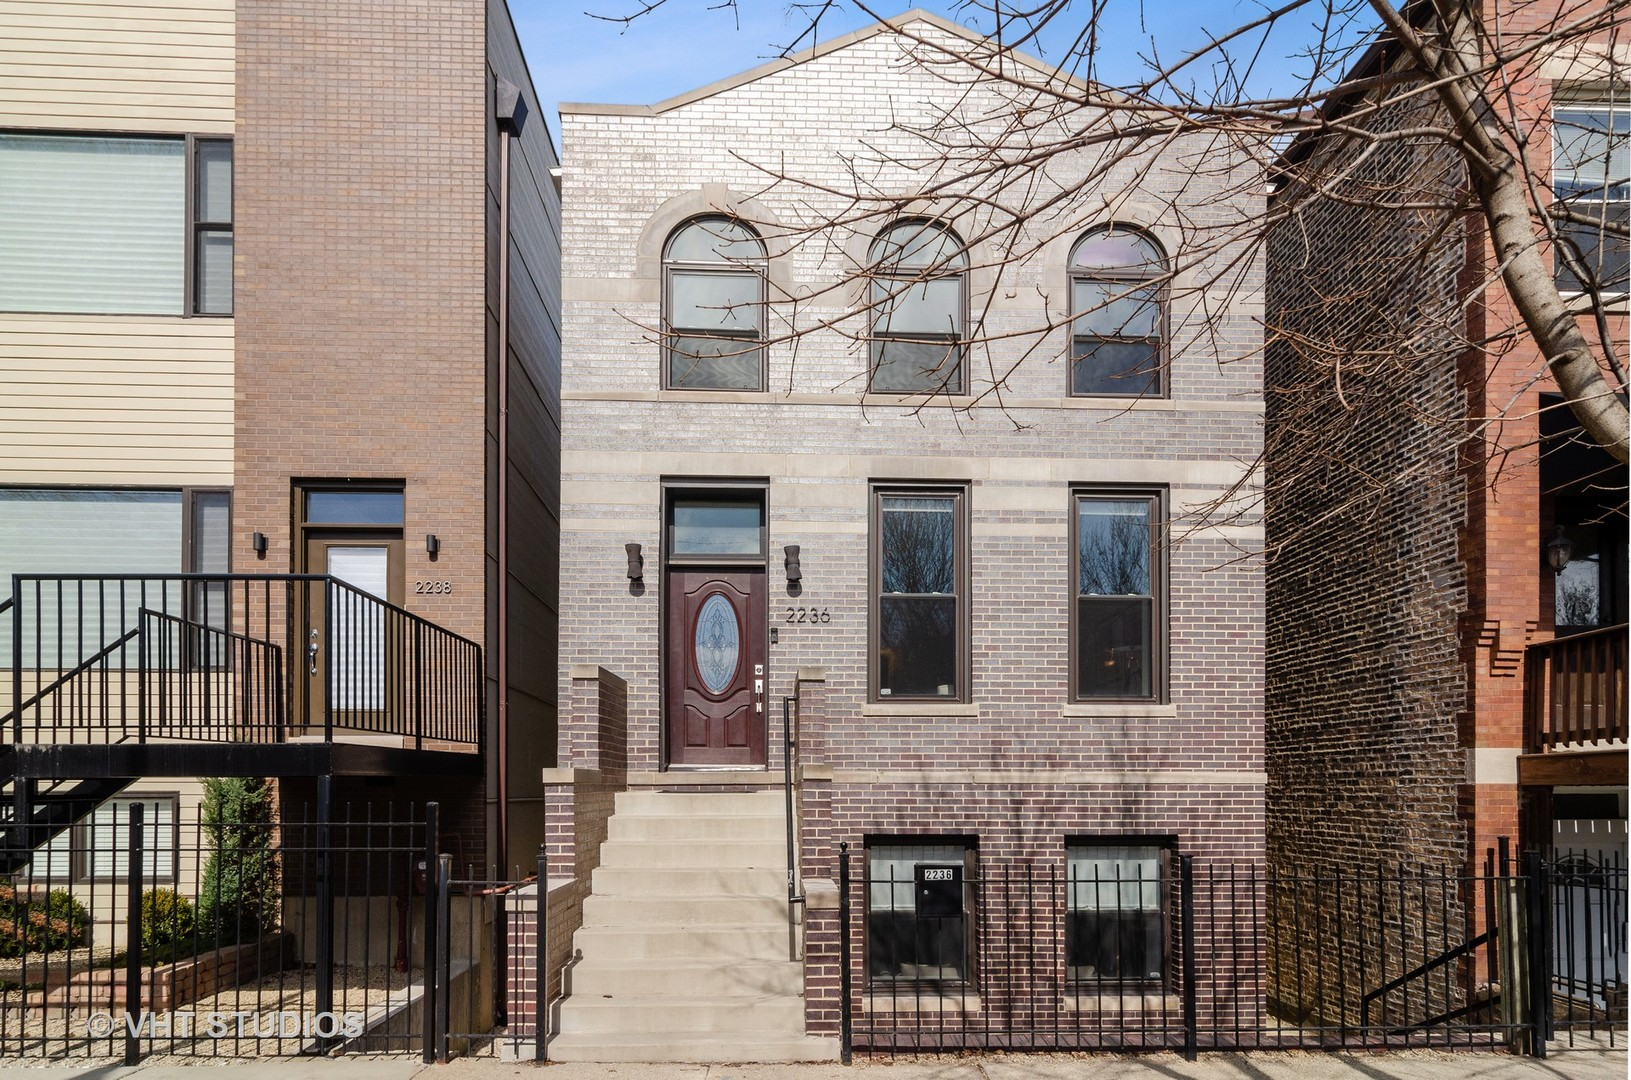 4 House in Logan Square